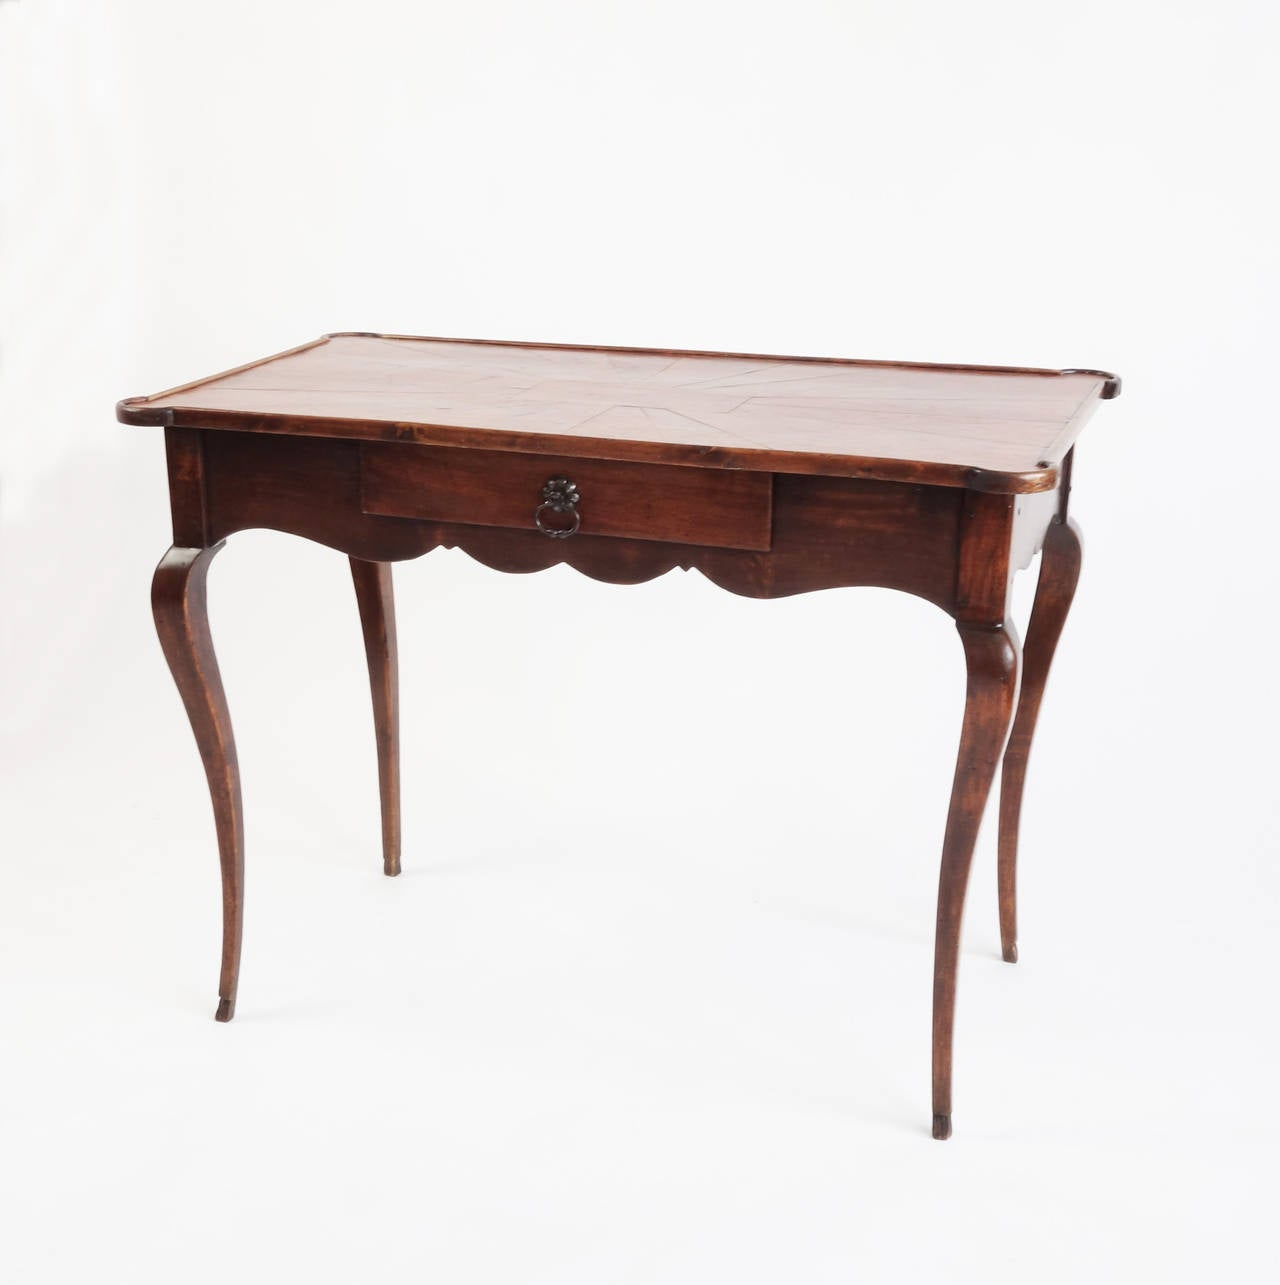 19th century french leather topped bureau plat at 1stdibs. Black Bedroom Furniture Sets. Home Design Ideas